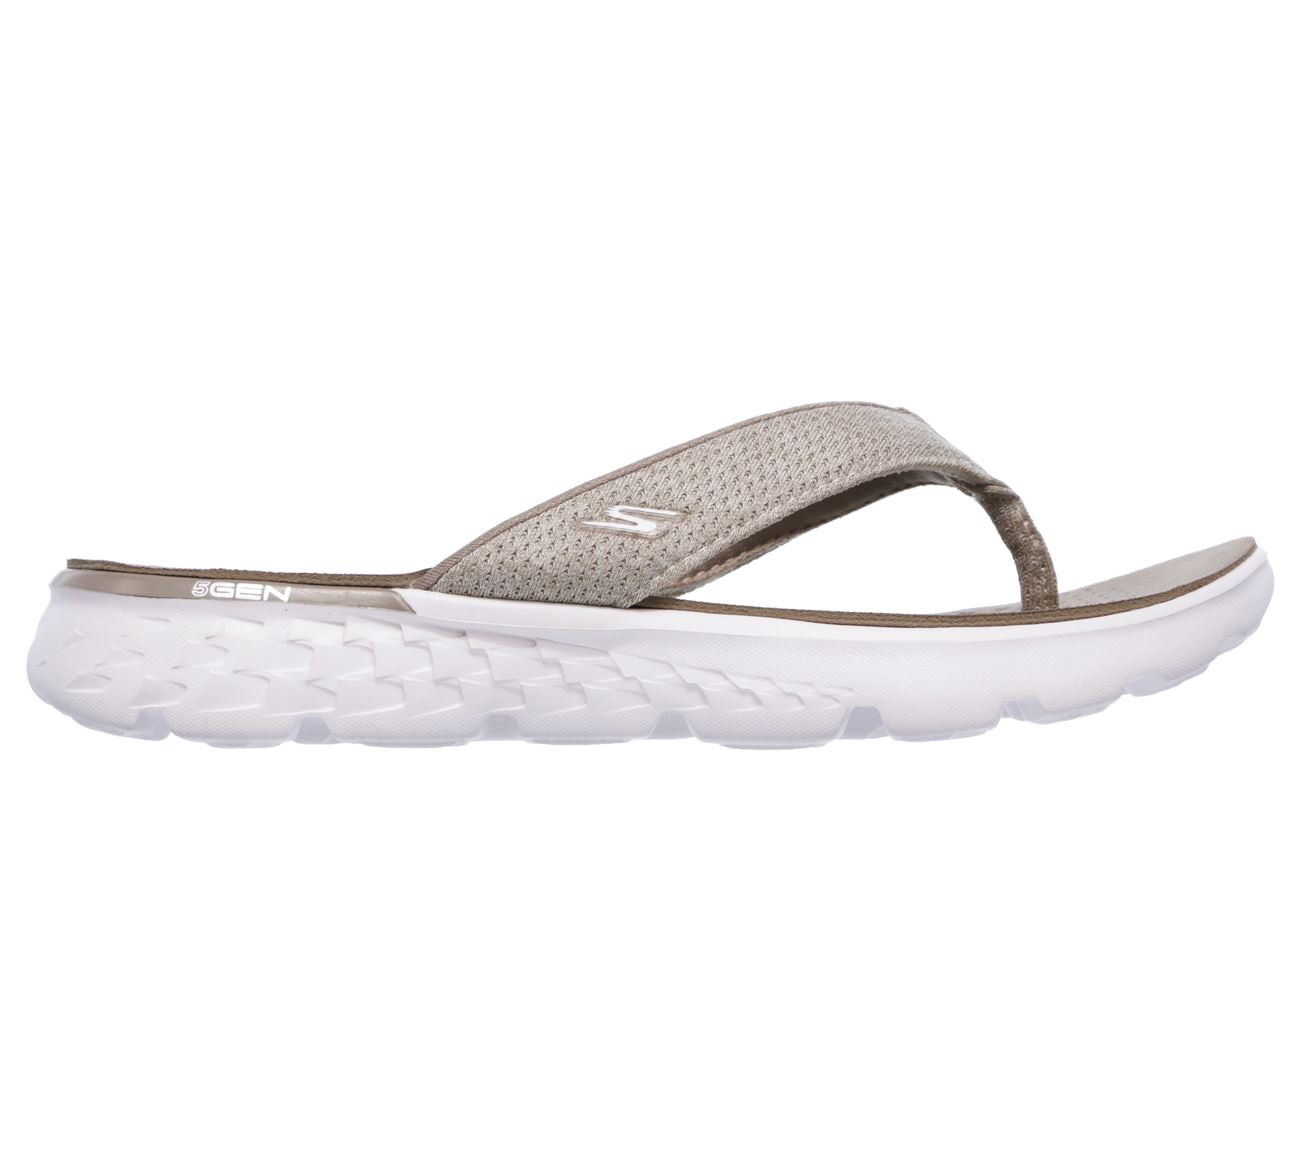 Skechers Performance Womens On The Go 400 Vivacity Sandal -6240